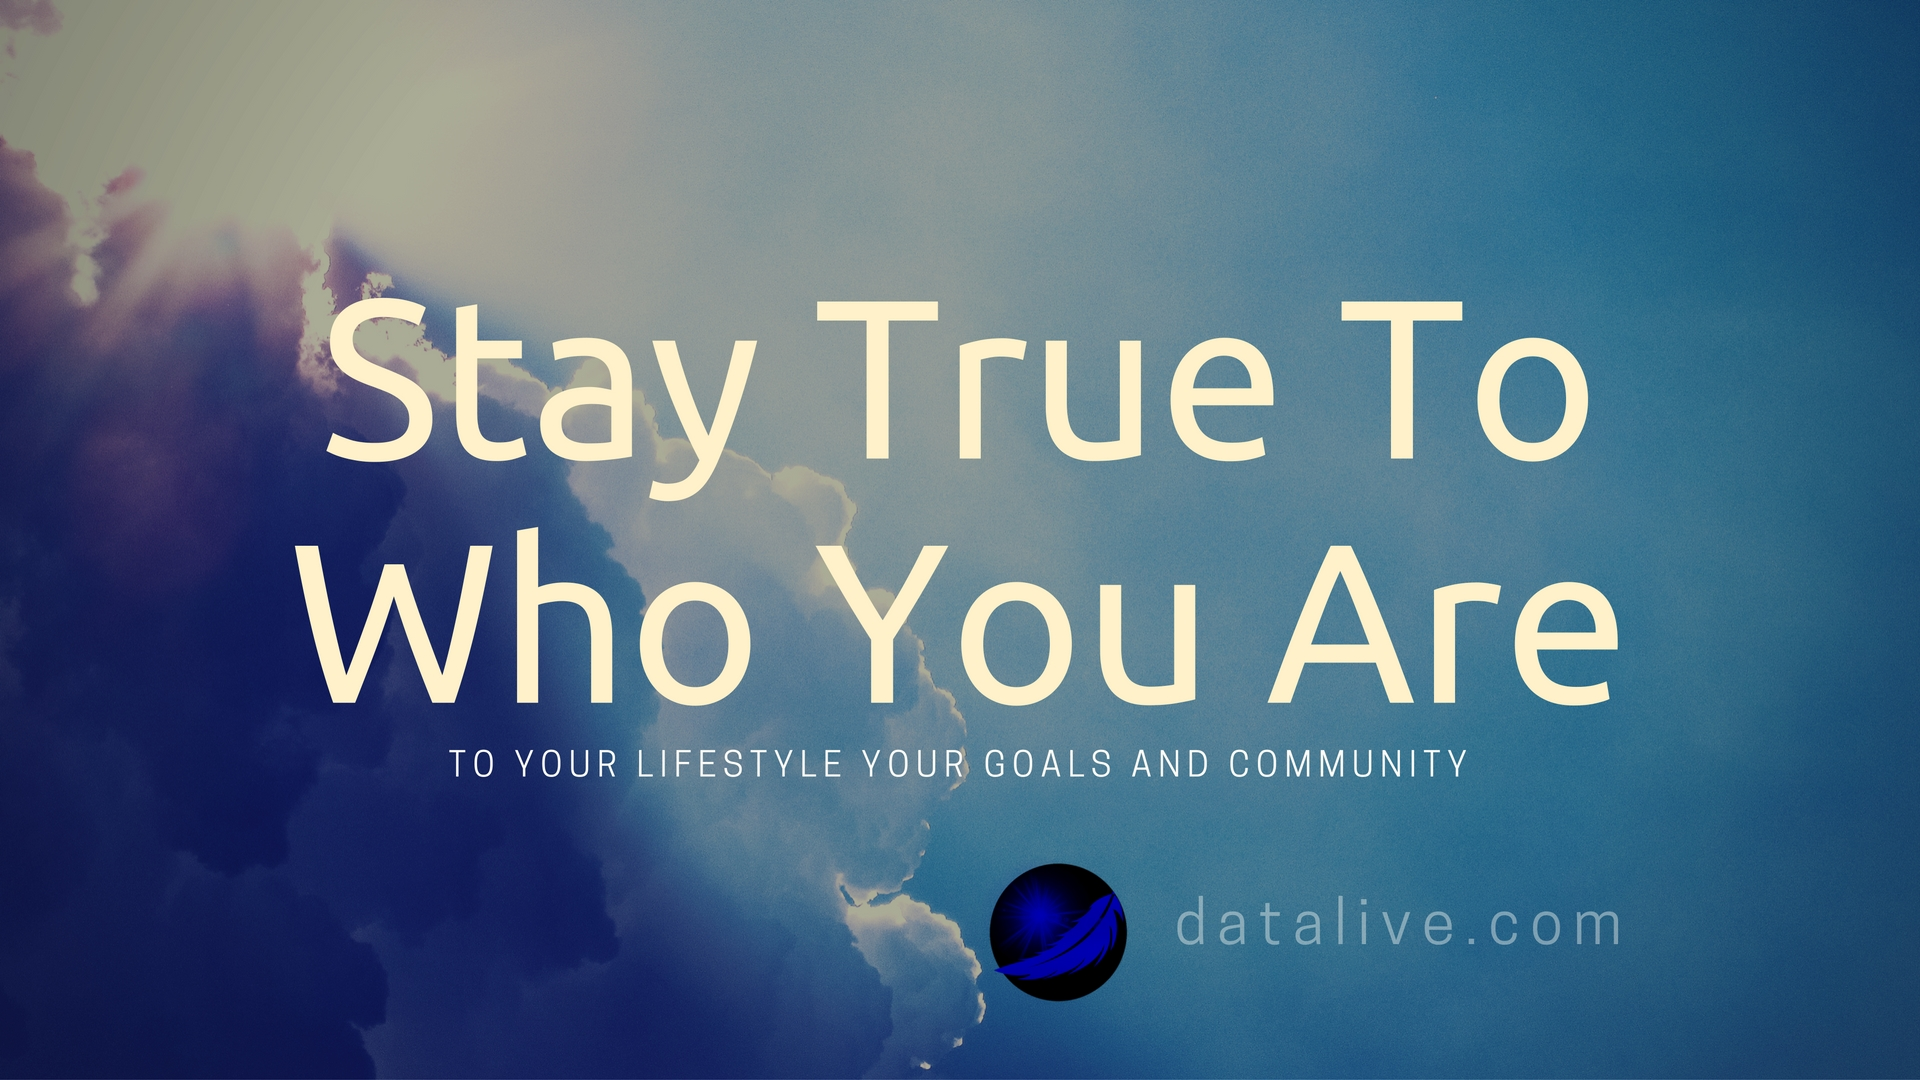 stay-true-to-you-datalive-community